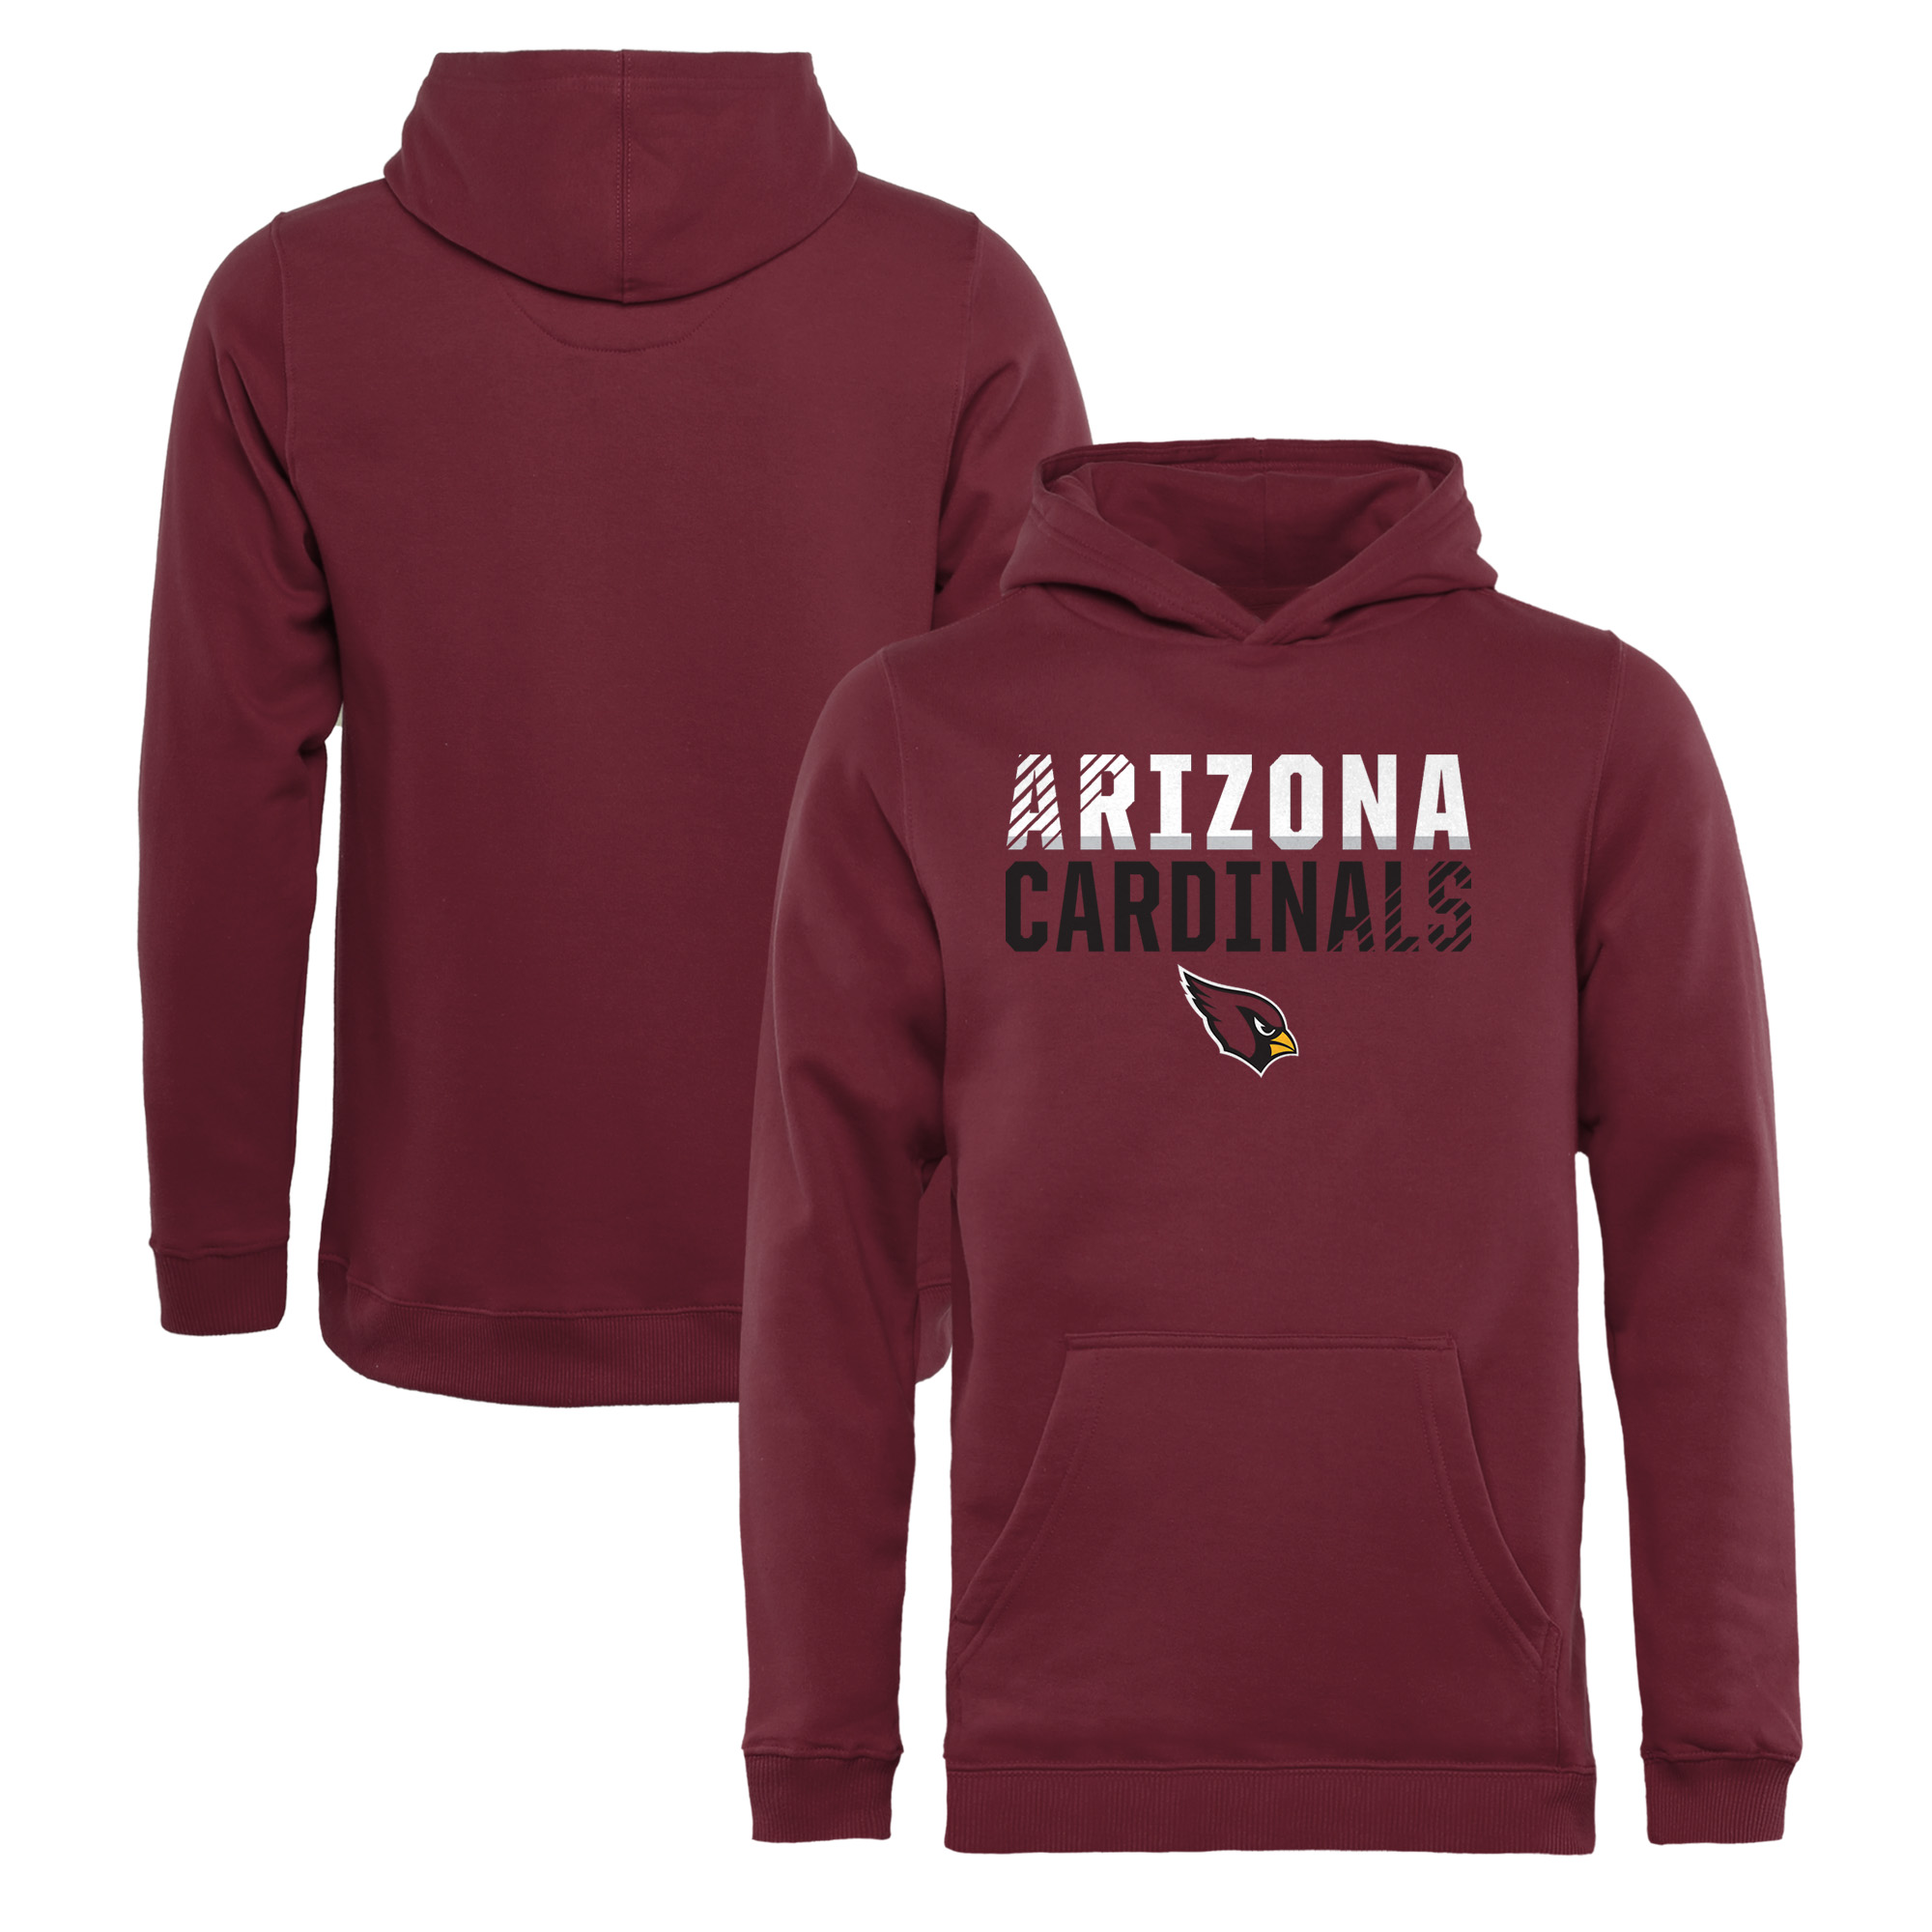 Arizona Cardinals NFL Pro Line by Fanatics Branded Youth Iconic Collection Fade Out Pullover Hoodie - Cardinal